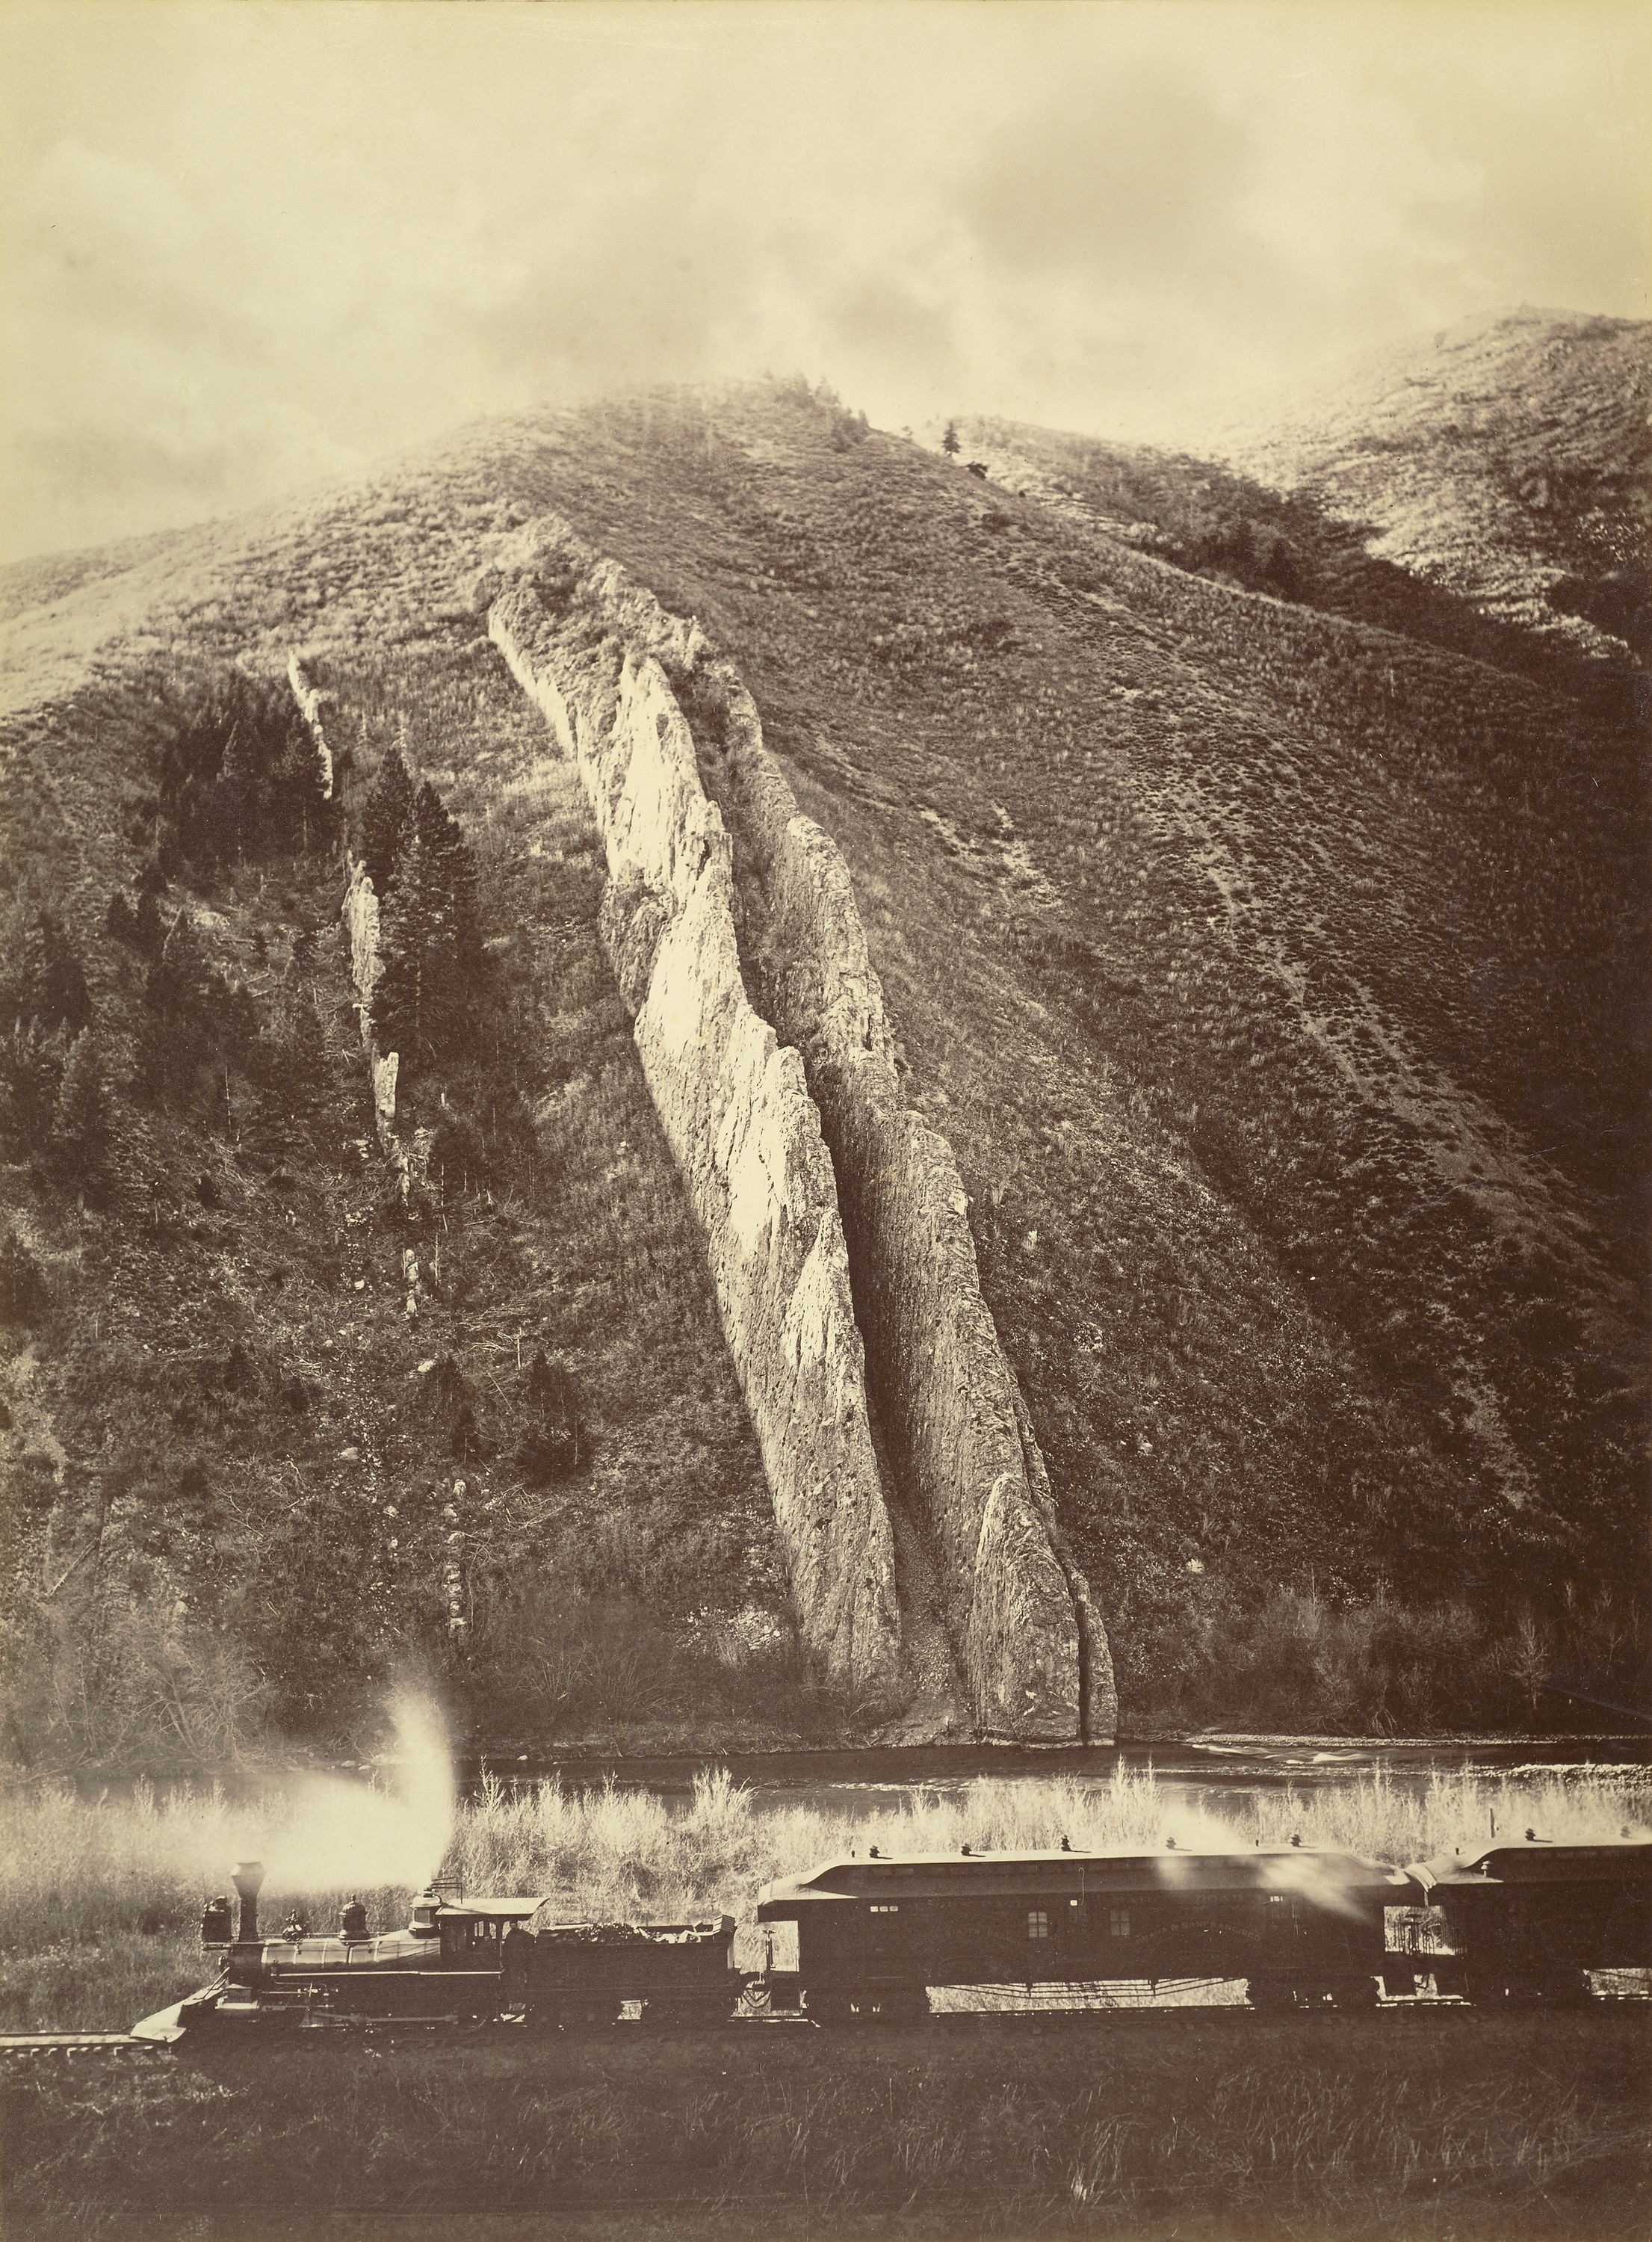 Carleton Watkins (American, 1829 - 1916)  [The Devil's Slide, Utah] , 1873 - 1874, Albumen silver print 52.1 × 39.1 cm (20 1/2 × 15 3/8 in.) The J. Paul Getty Museum, Los Angeles